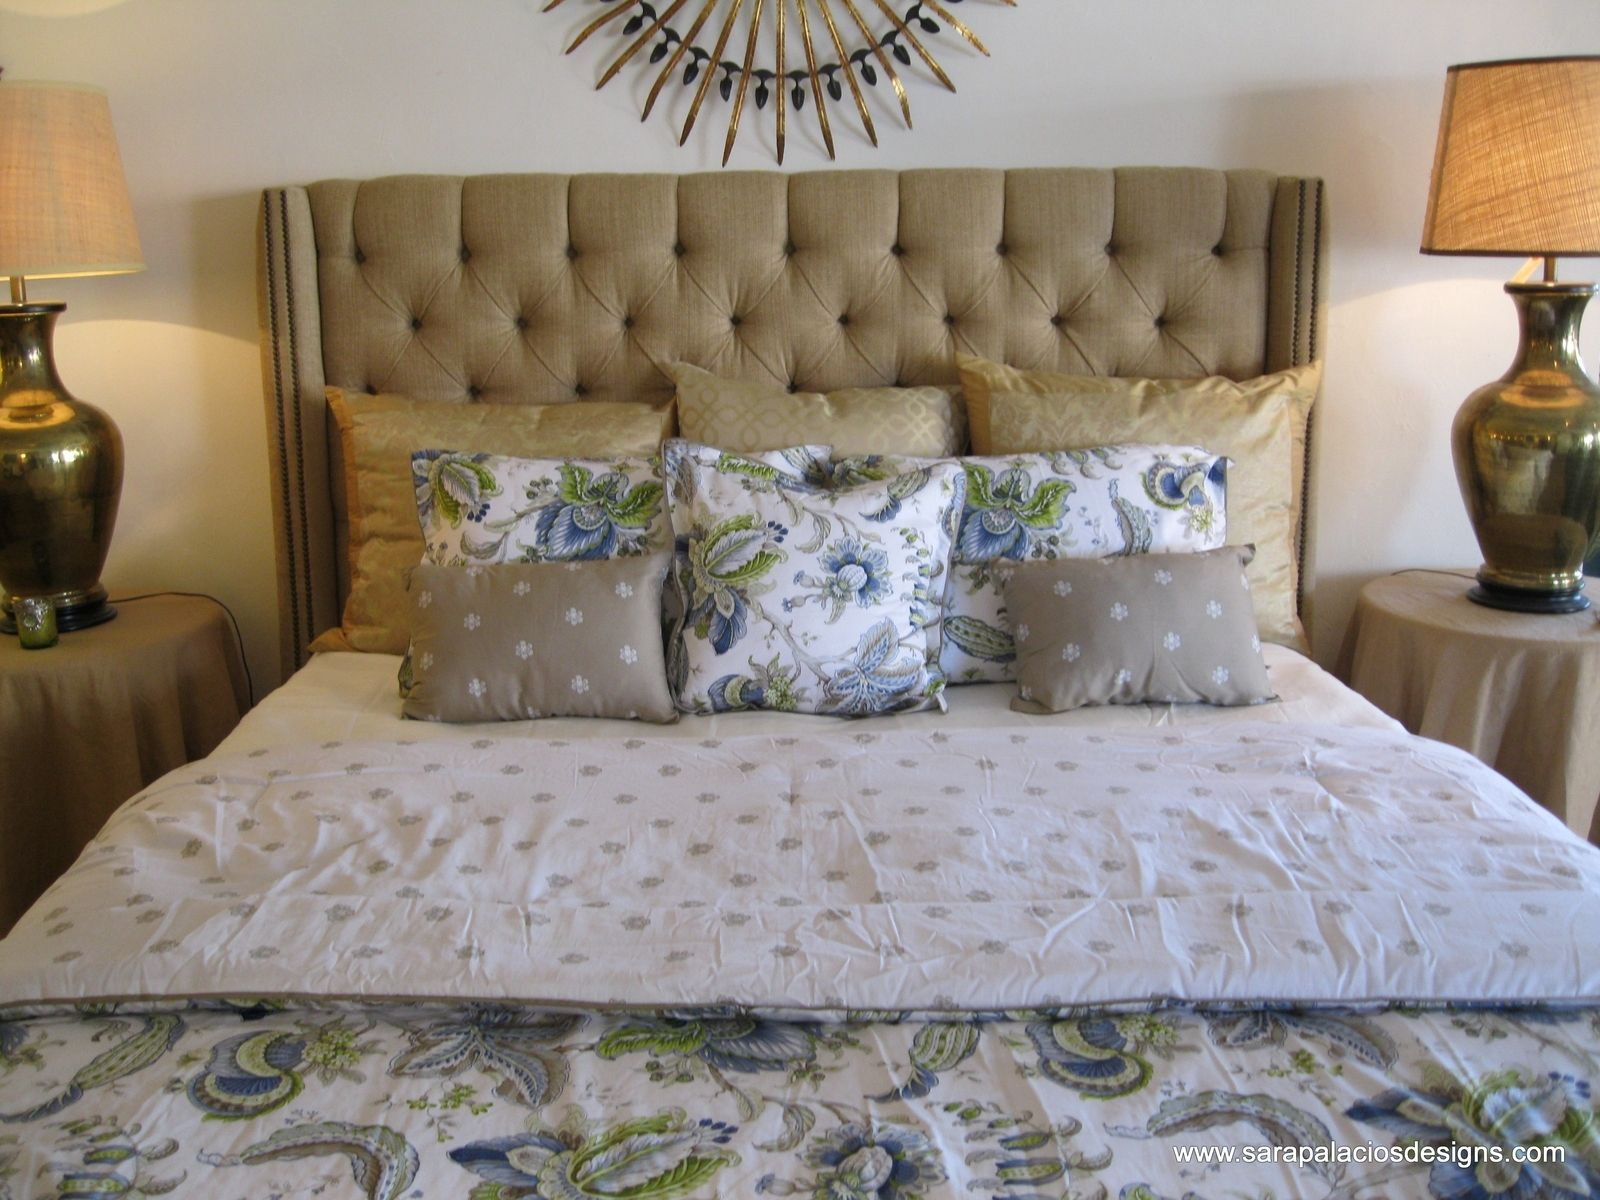 Hand Crafted Tufted Linen King Bed Headboard By Sara